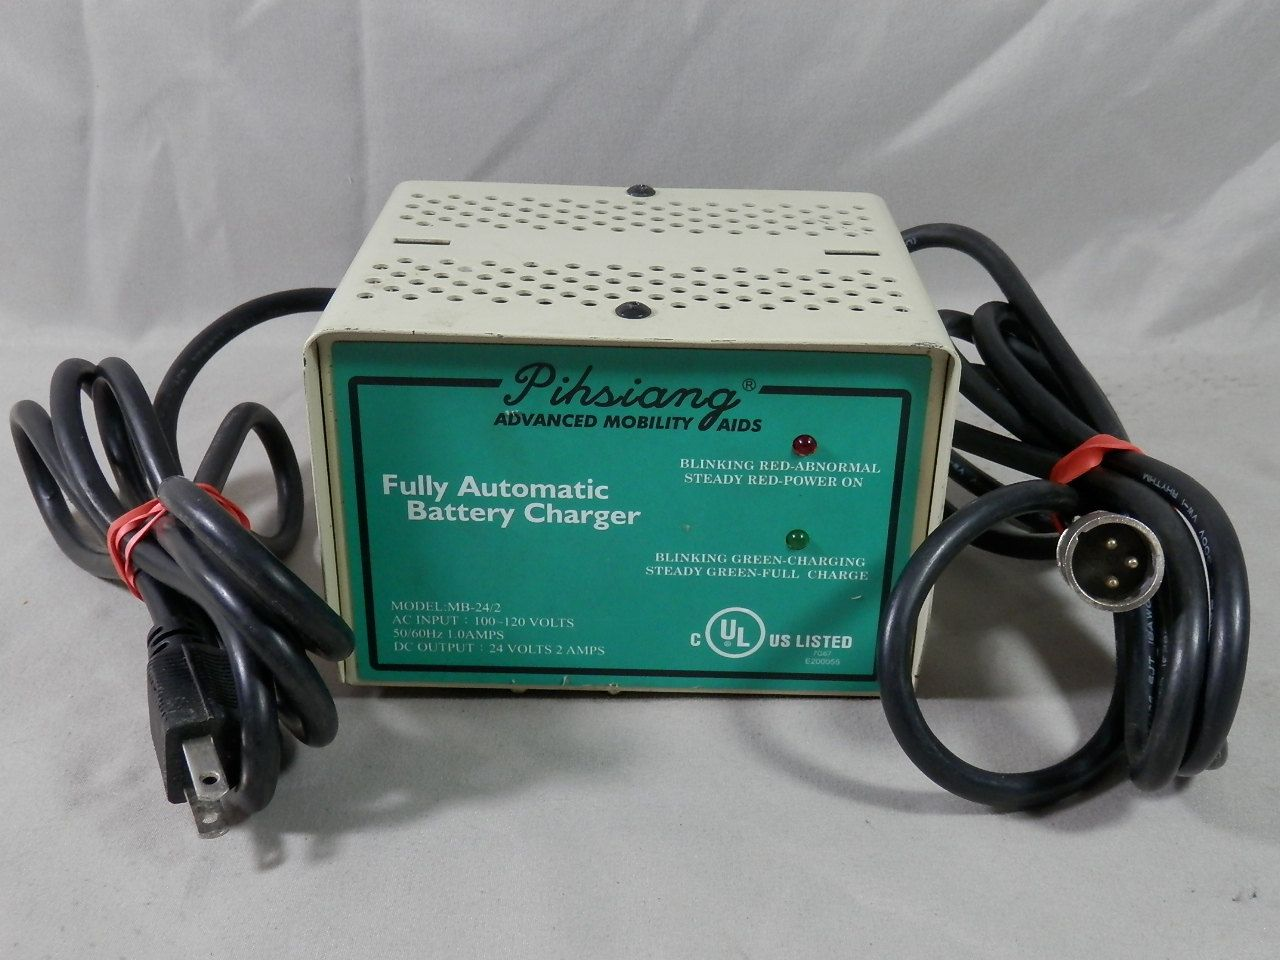 hight resolution of pihsiang mb 24 2 24 volt 2a automatic battery charger mobility scooter 3 pin connector 2 amp by caymanhilldesigns on etsy